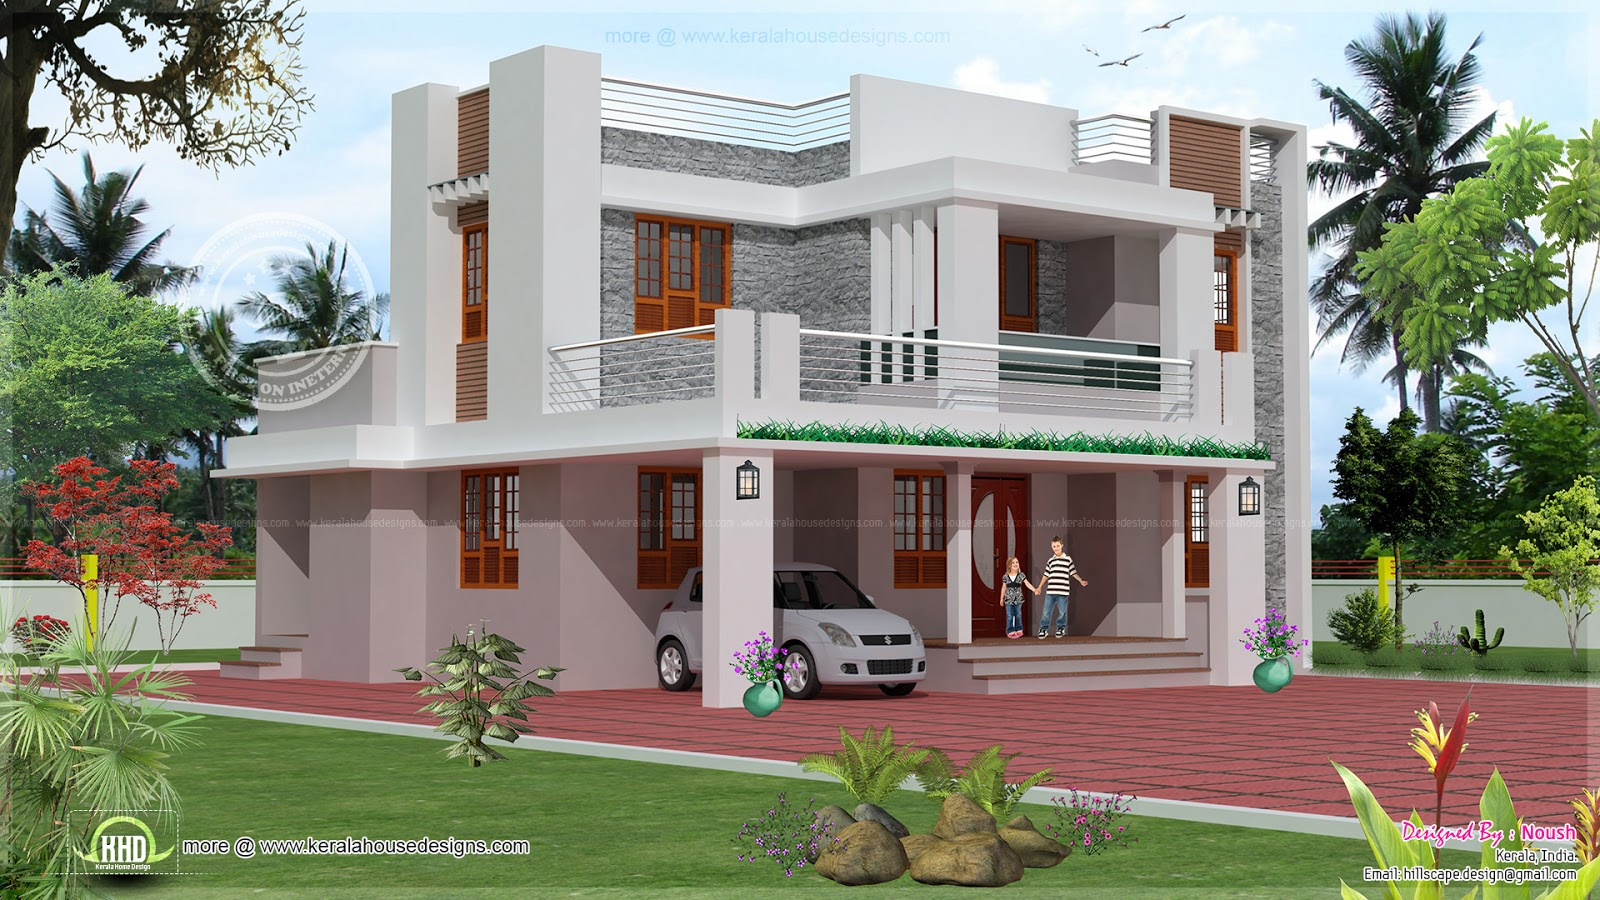 4 bedroom 2 story house exterior design house design plans for Remodel outside of house